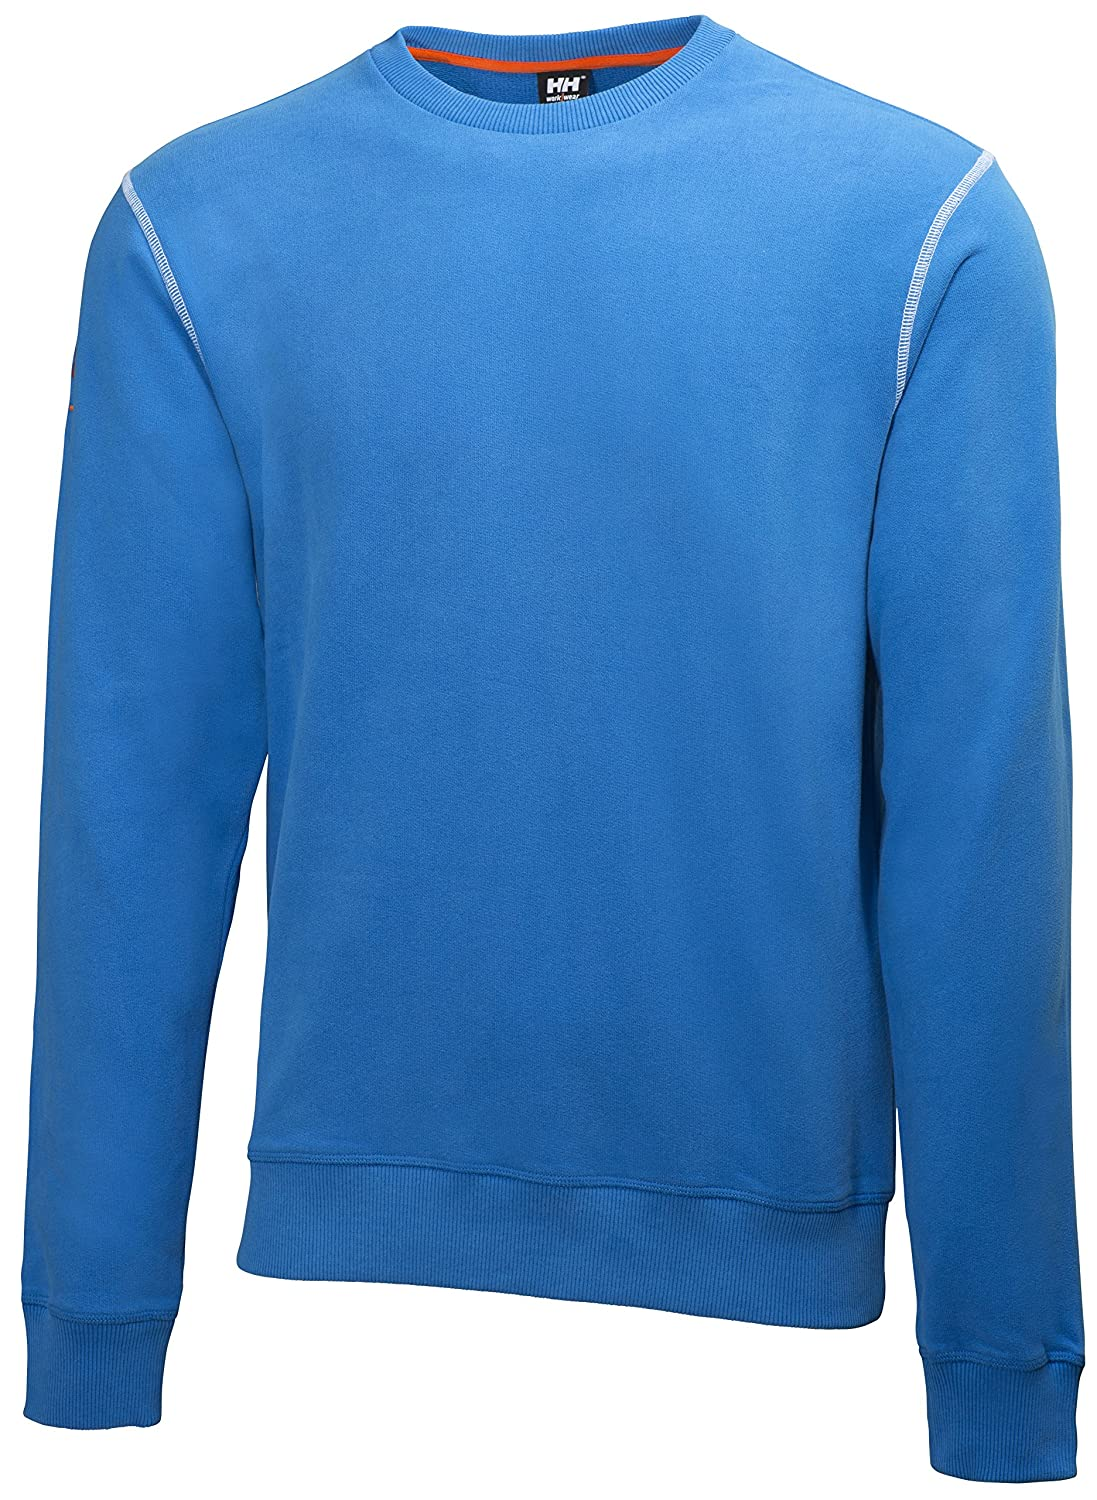 Helly Hansen Workwear Sweatshirt Oxford Sweater Pullover 530 racer, Grö ß e 3XL, blau, 79026 79026_530-3XL